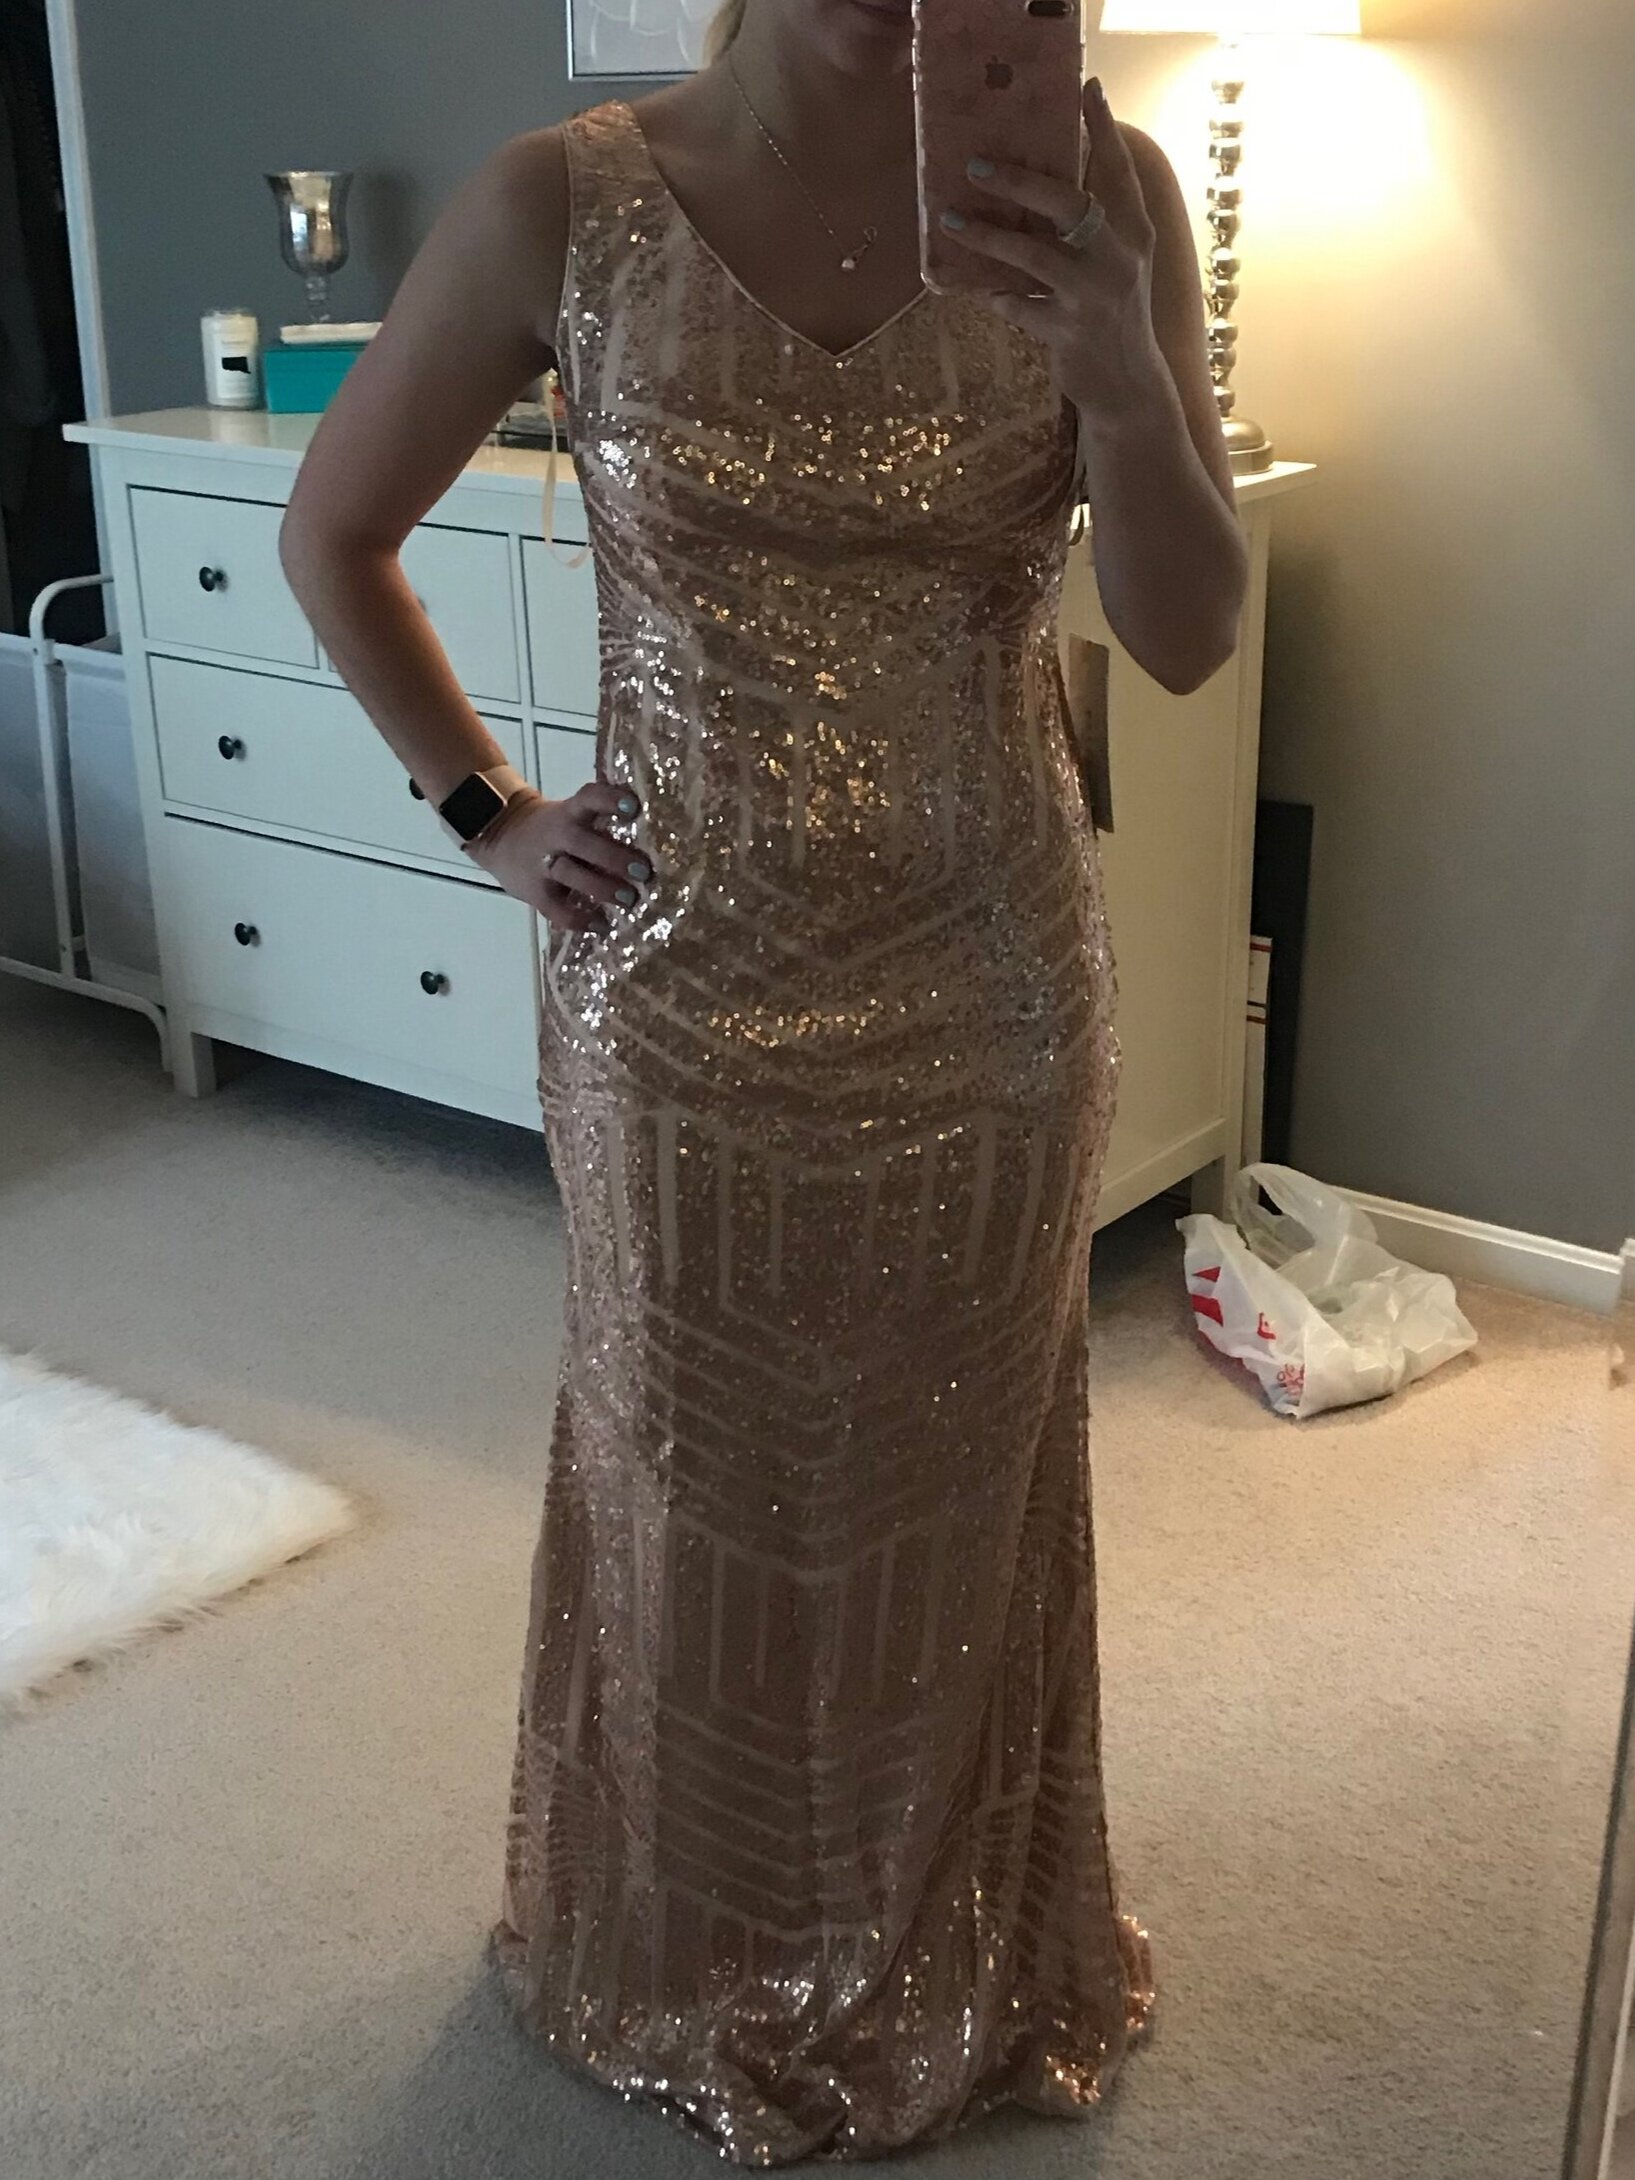 gold sequins bridesmaid dress - I tried this out as an option for my bridesmaids, and although I went a different route this one was GORGEOUS and only $75!